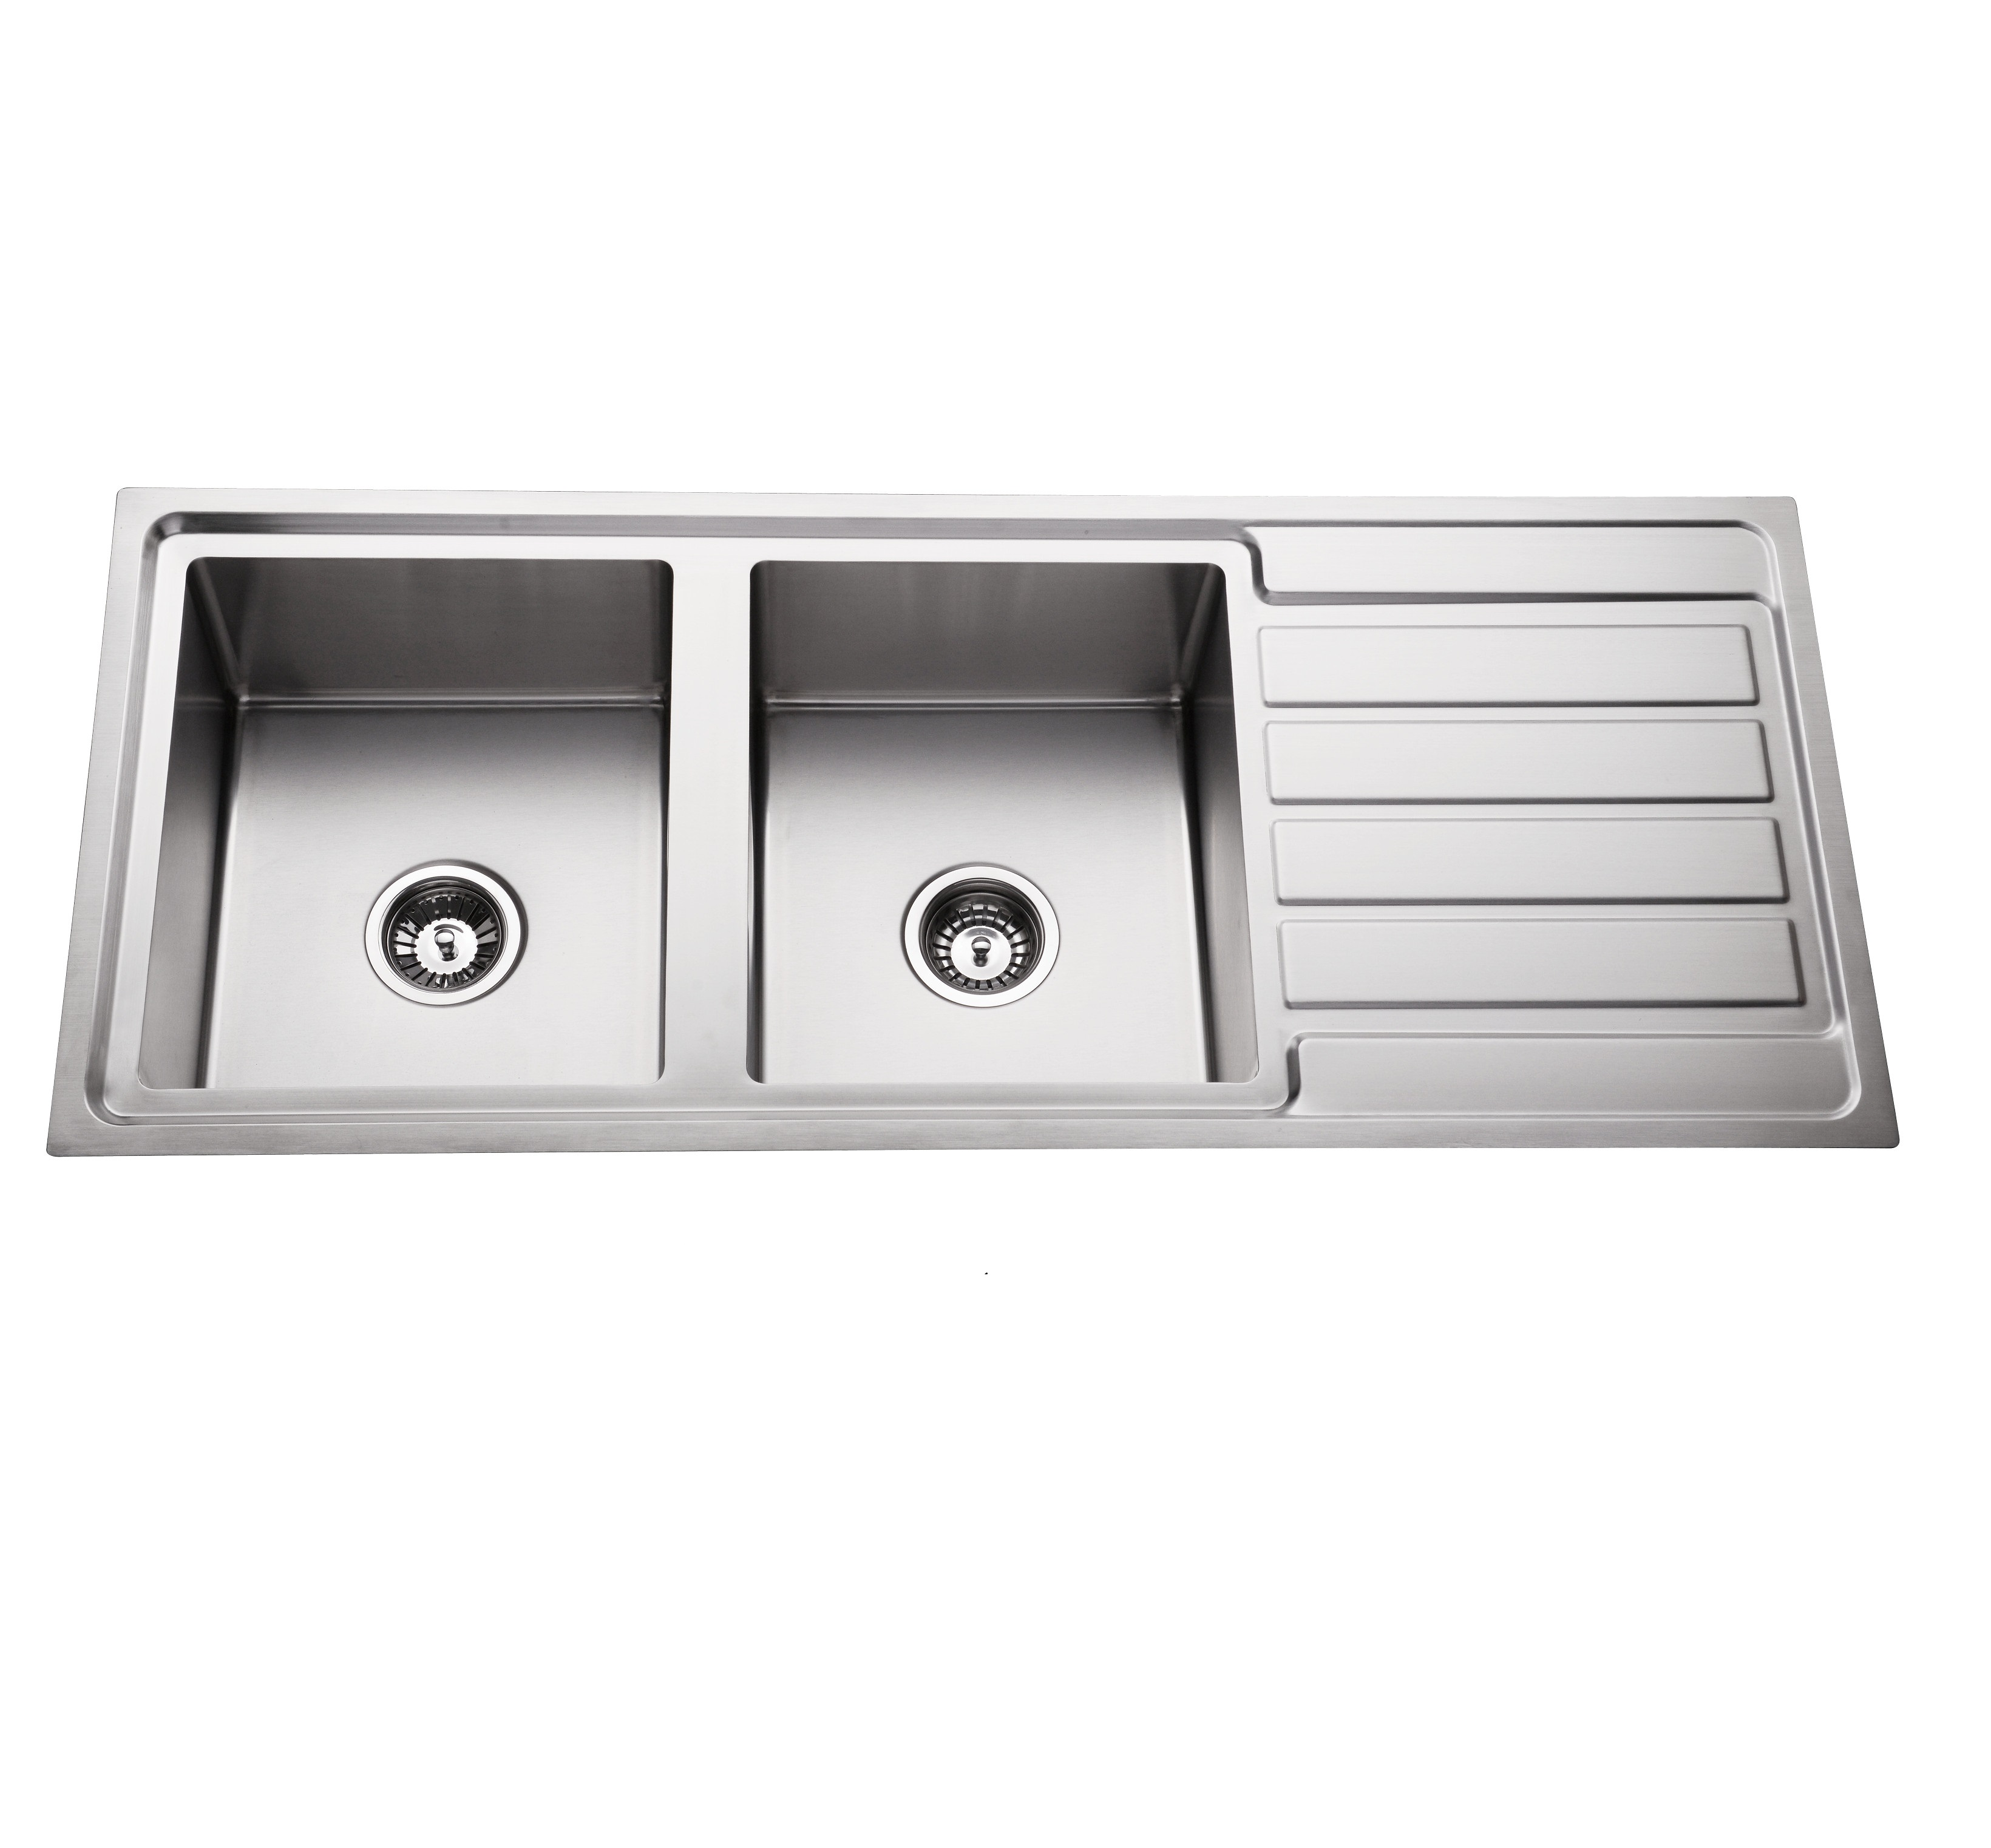 304 stainless steel double bowl top mount kitchen handmade sink